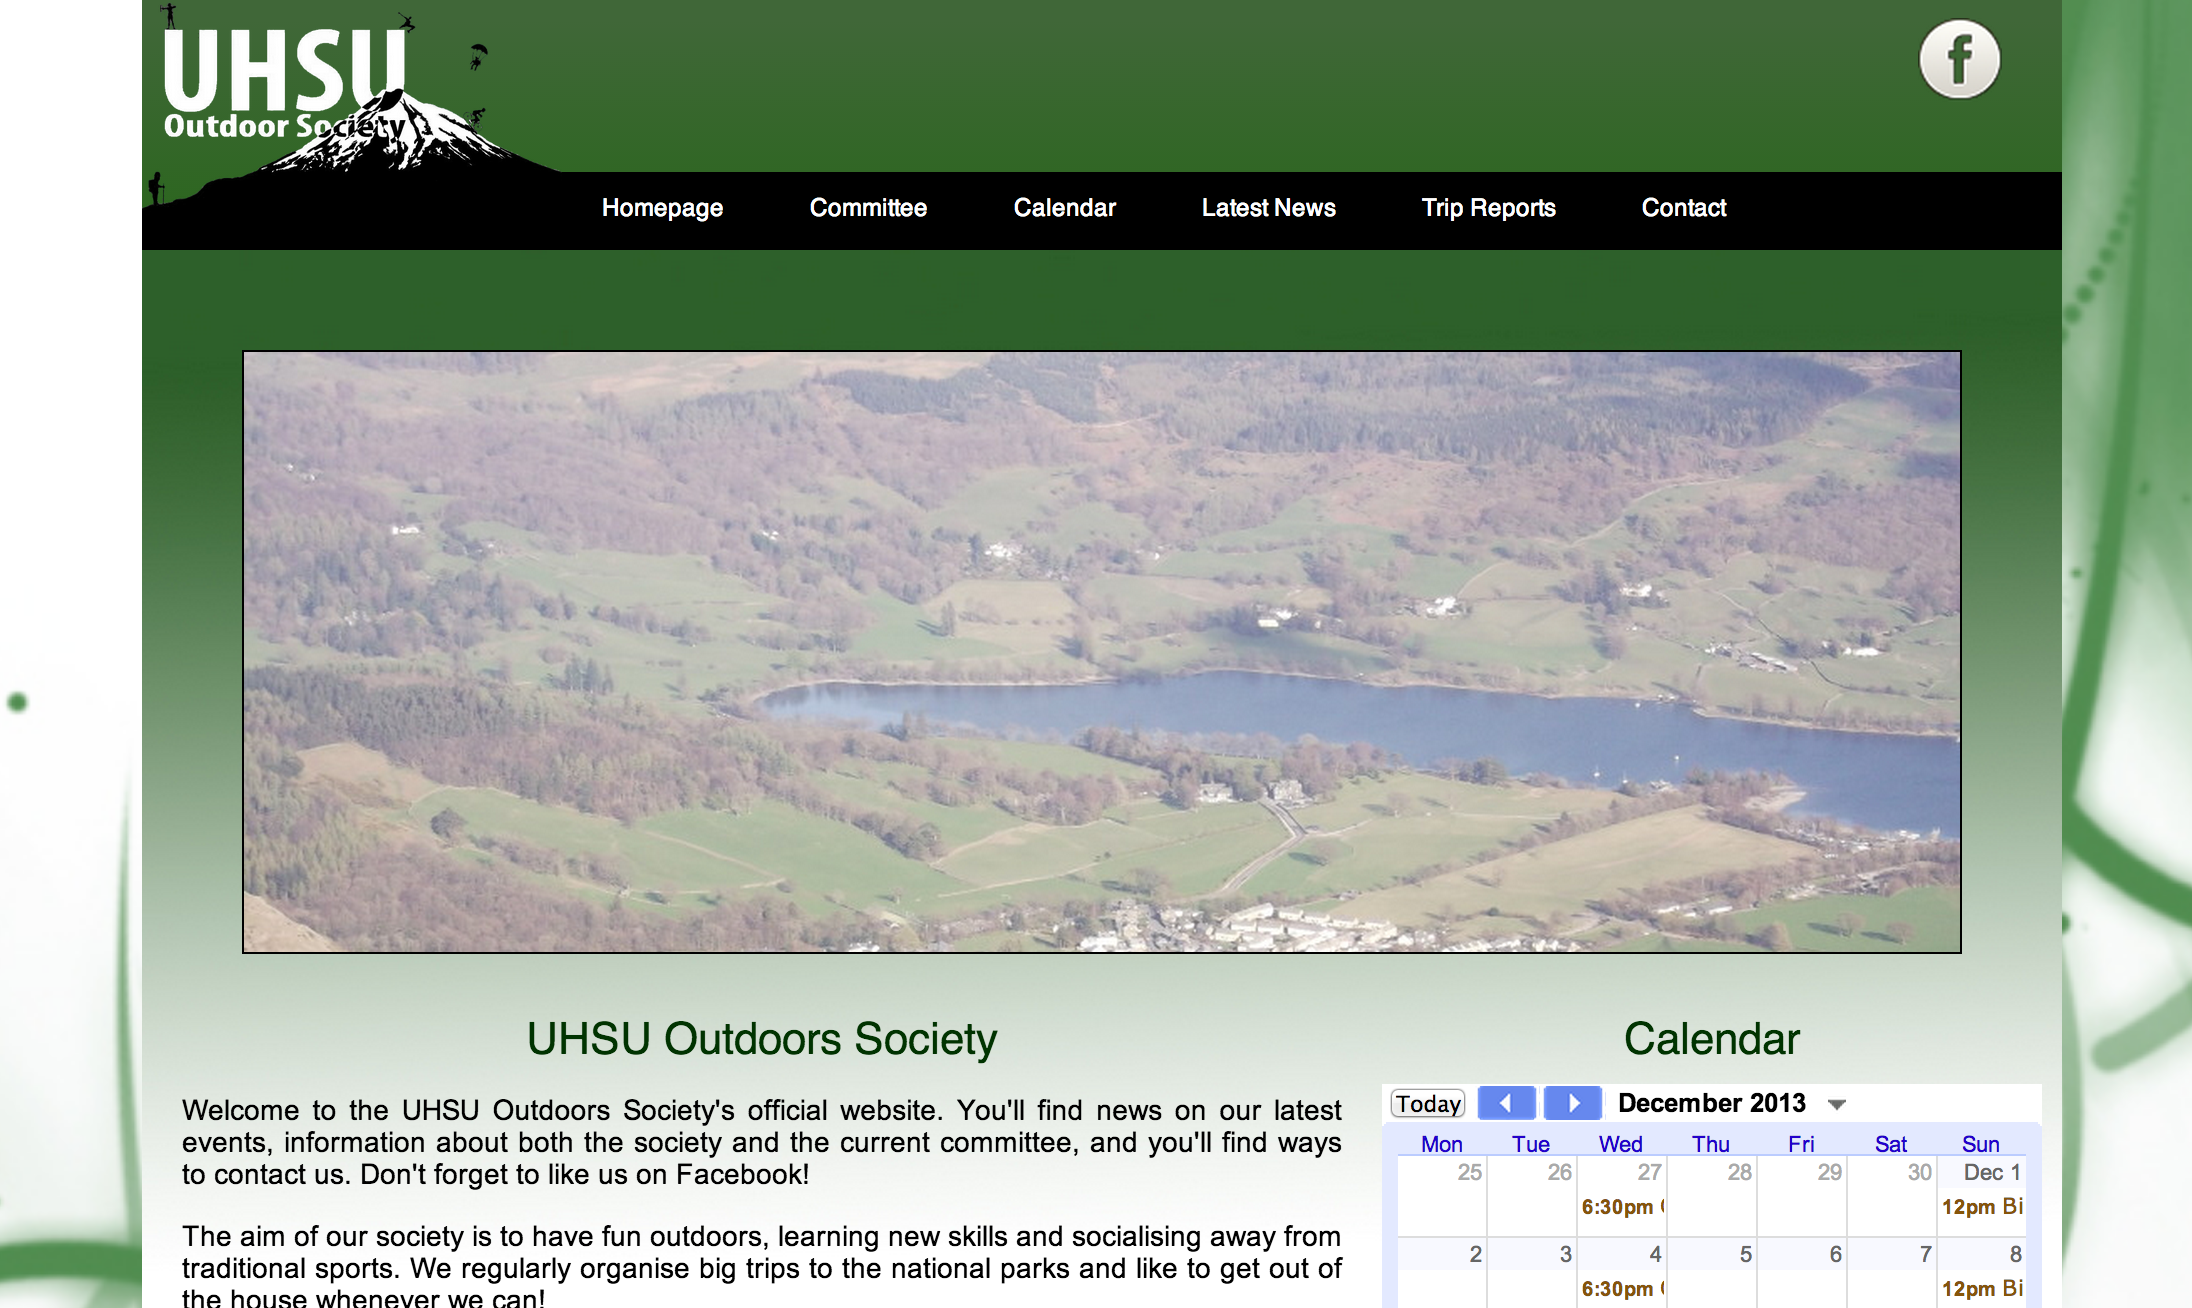 Outdoor Society Website